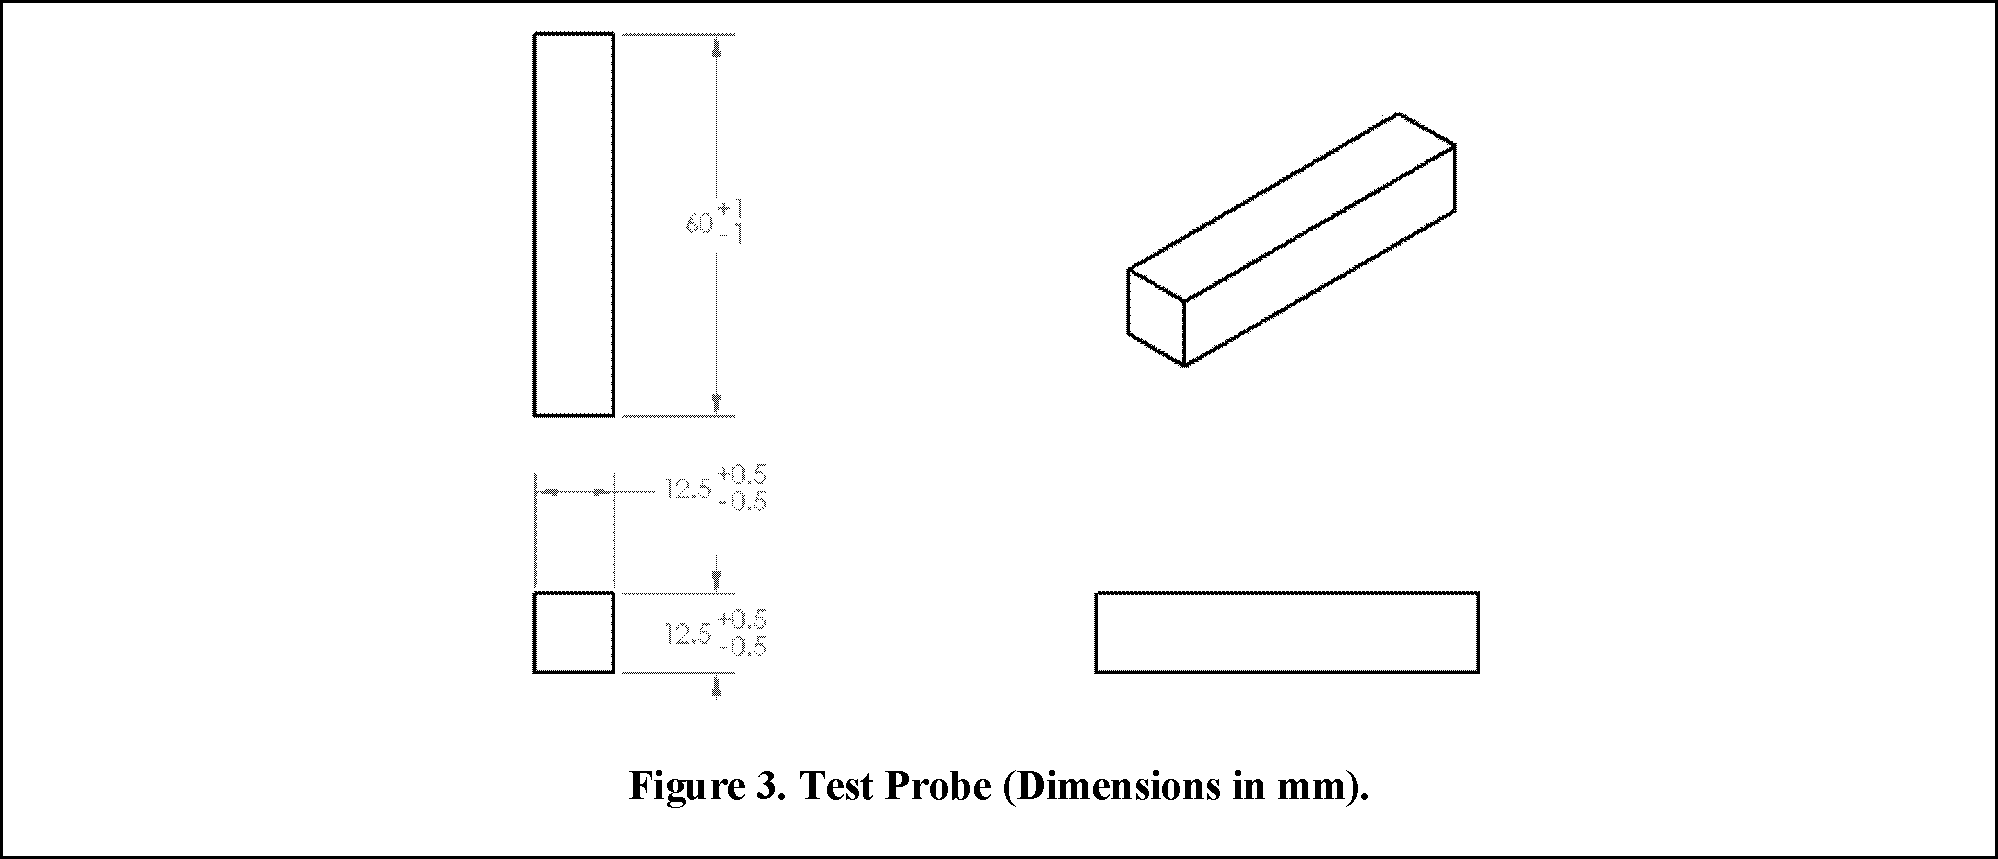 medium resolution of  triggering purposes staff used a test probe that represents the conductive layer of human flesh once the epidermis has been cut by a table saw blade